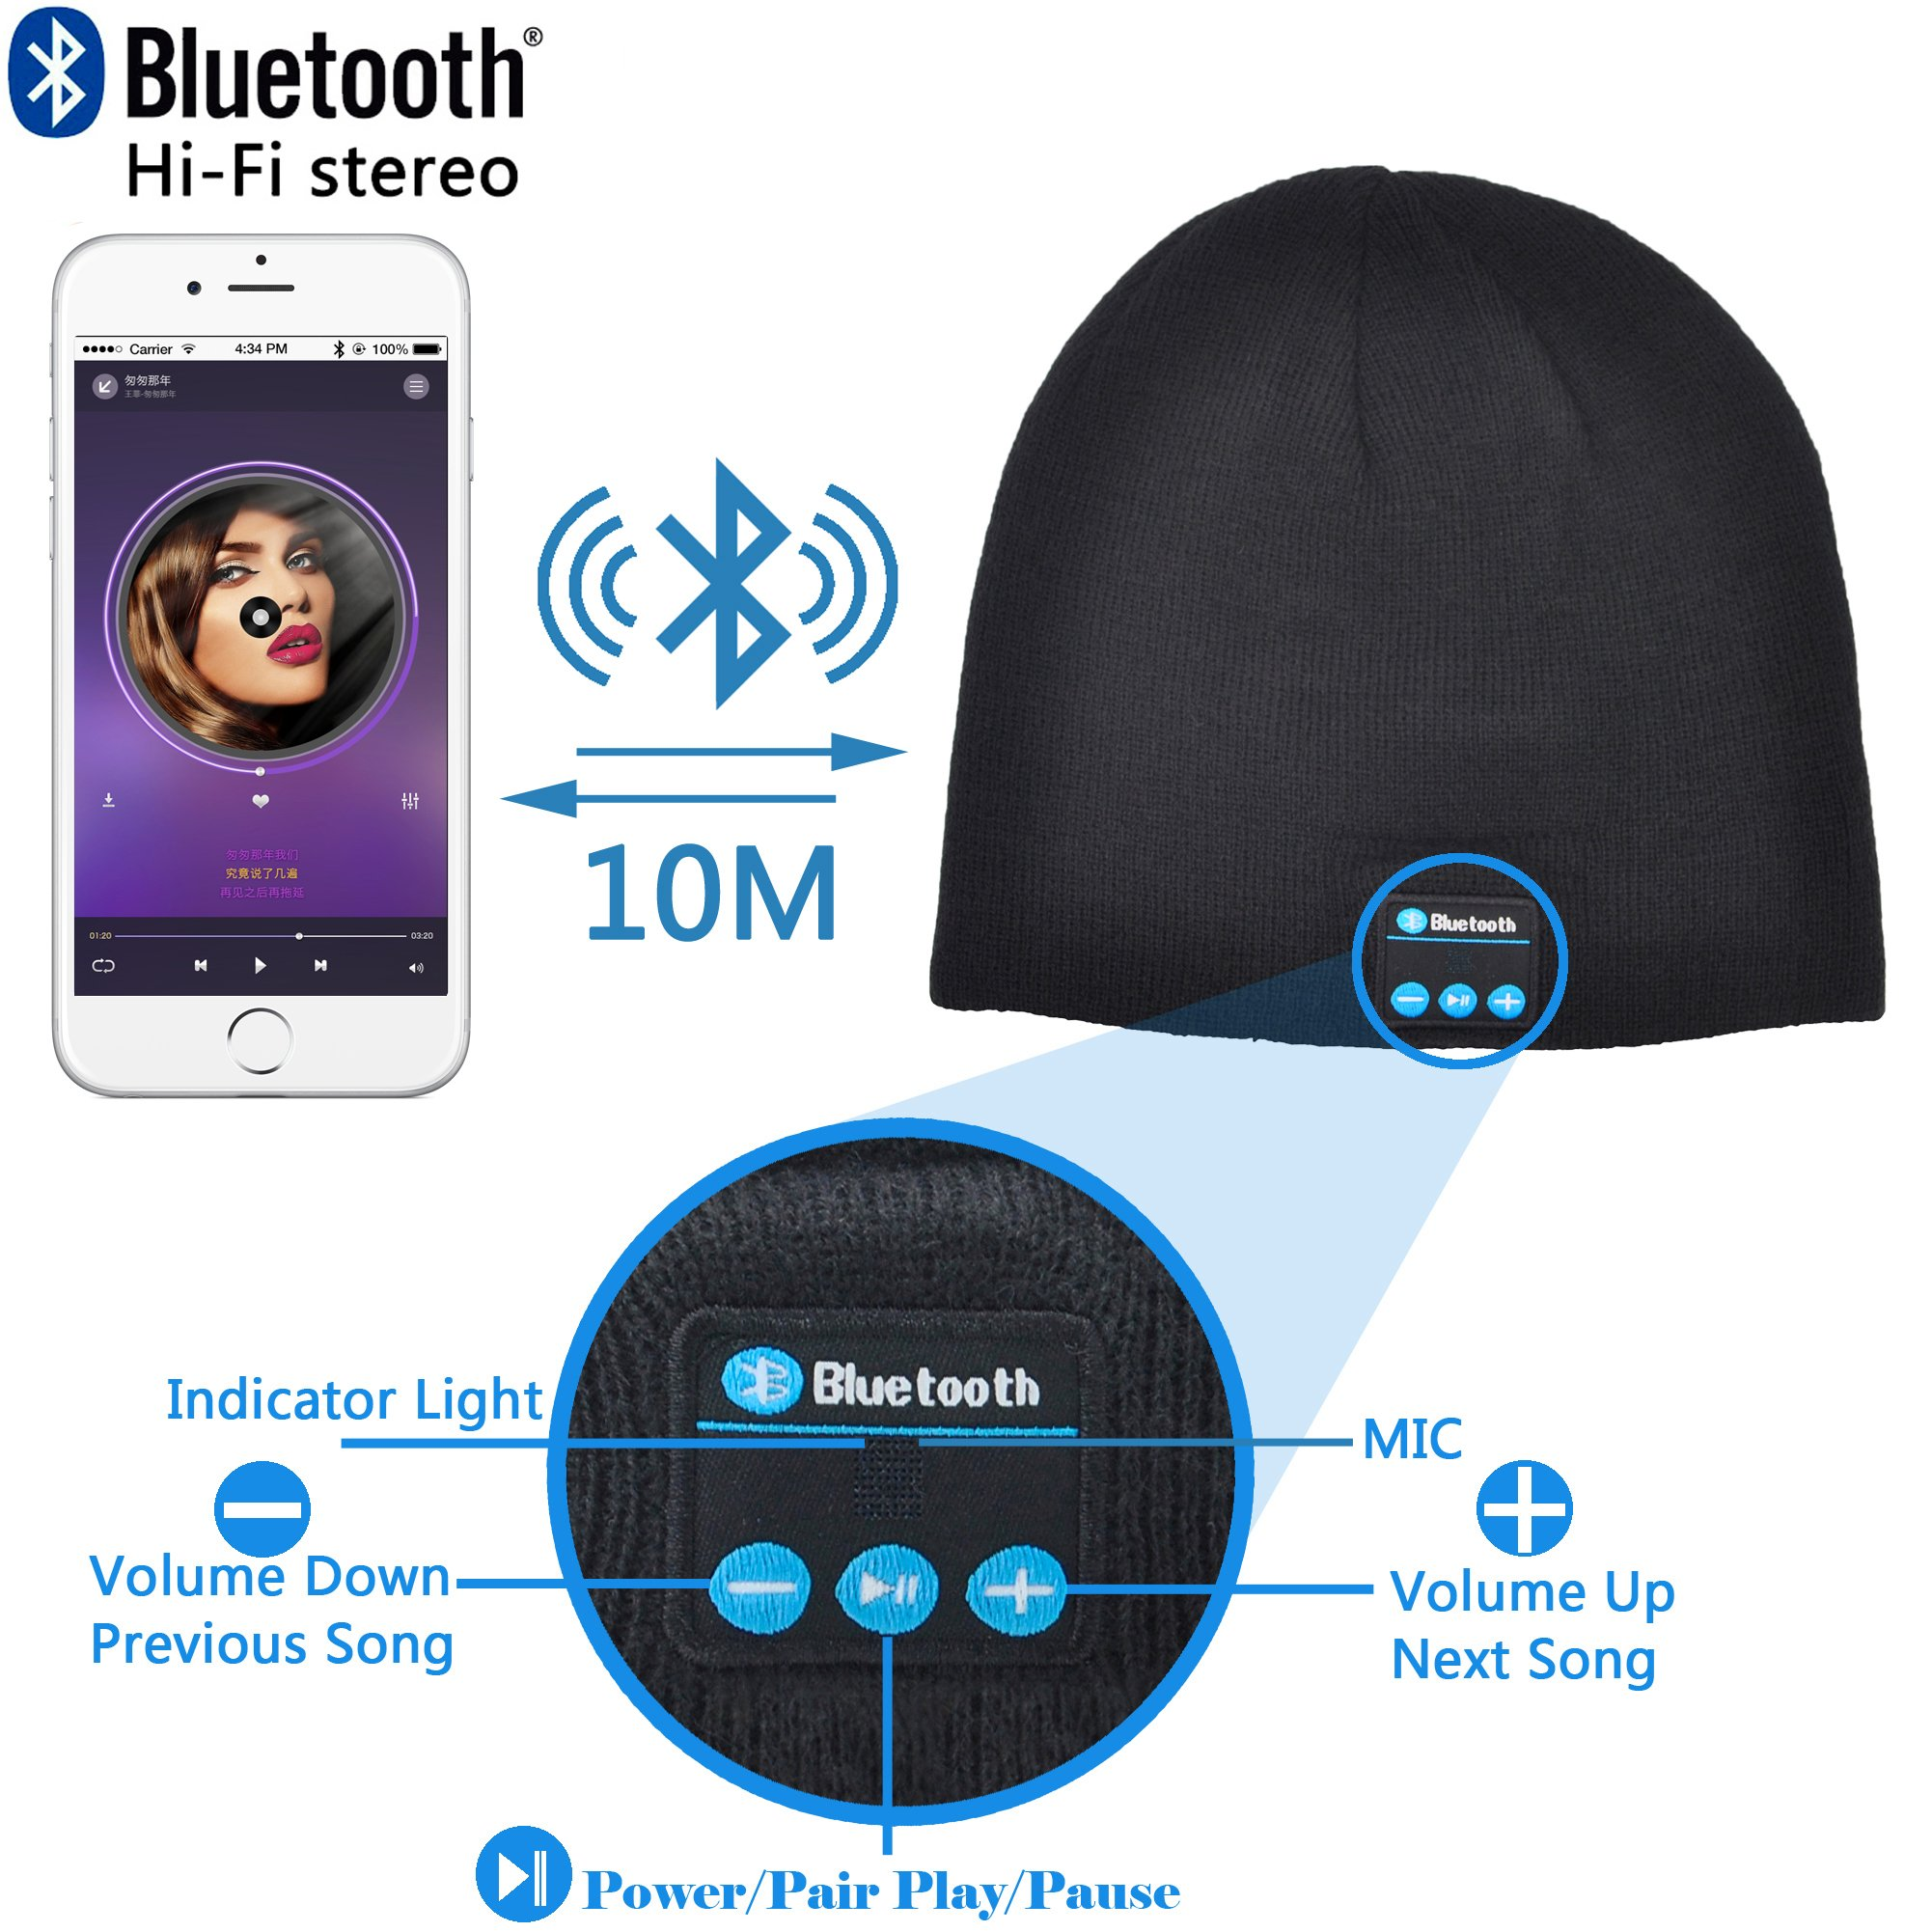 FULLLIGHT TECH 4.1 Bluetooth Beanie Hat Running Earphones Headphones Wireless Musical Knit Cap with Stereo Speakers & Mic Unique Christmas Tech gifts Winter hat for Women Men Teen Boys Young Girls